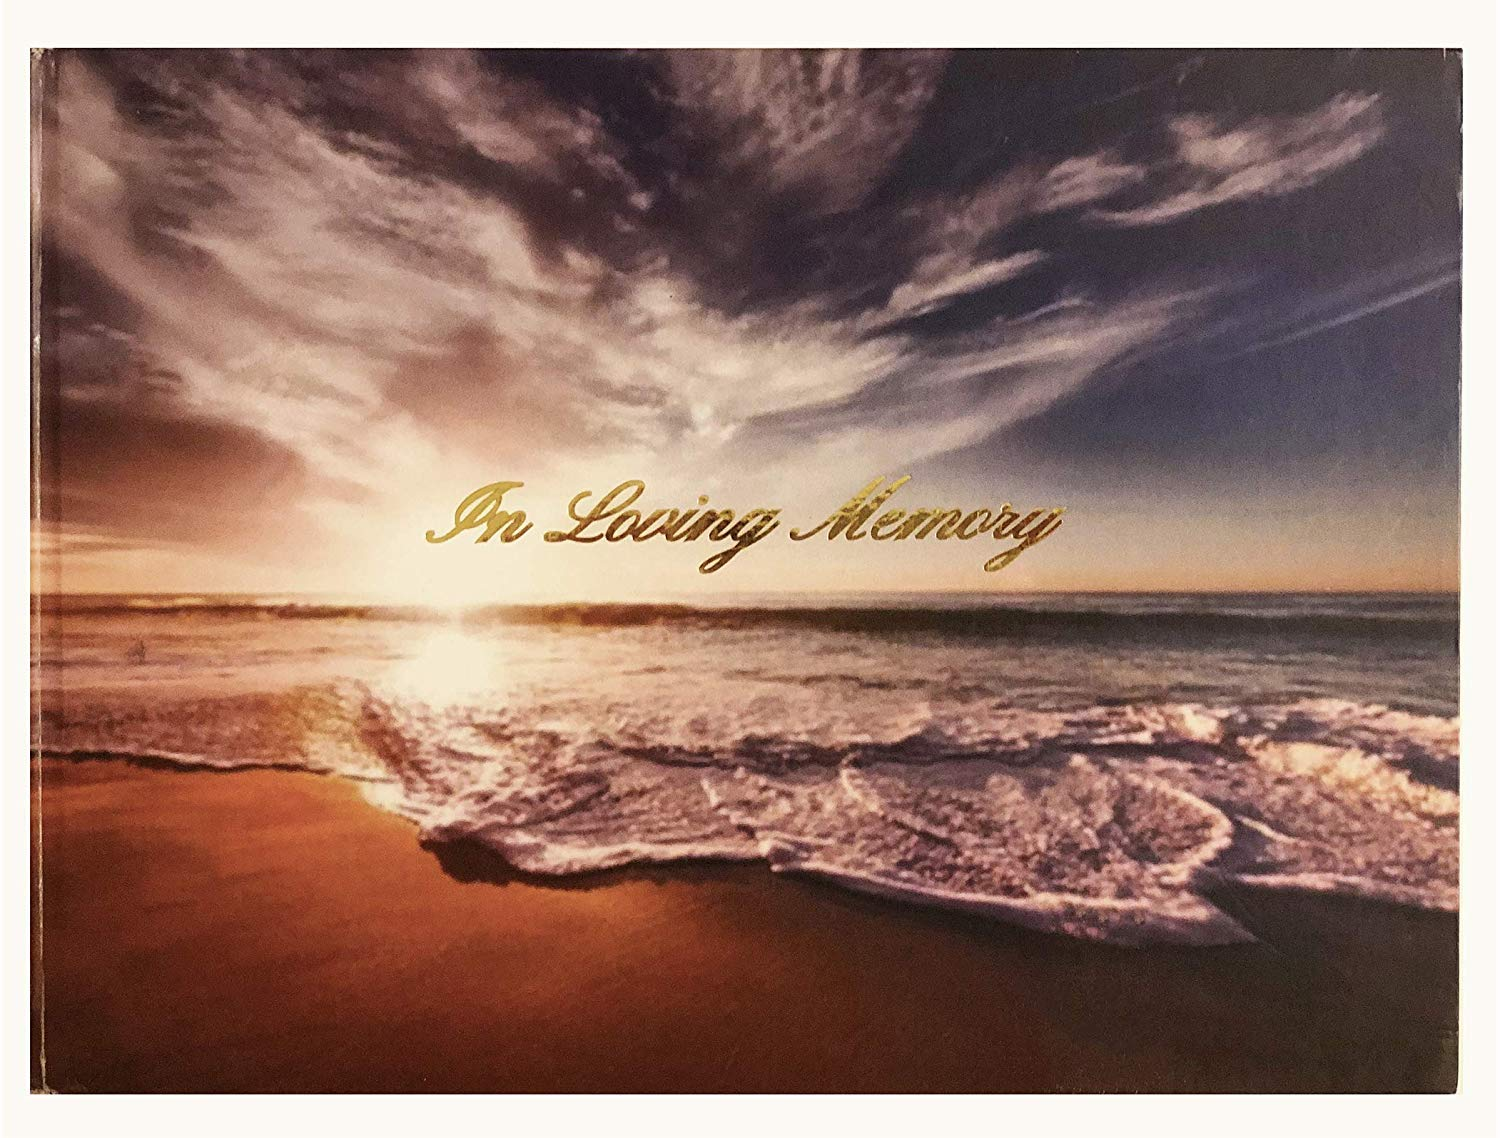 LifeToo (Formerly DTGG) Memorial Guest-Registry Book - Hardcover :in Loving Memory   Spine: A Celebration of Life Ocean Sunset Hardcover Book (Hardcover Book Only) by Life Too